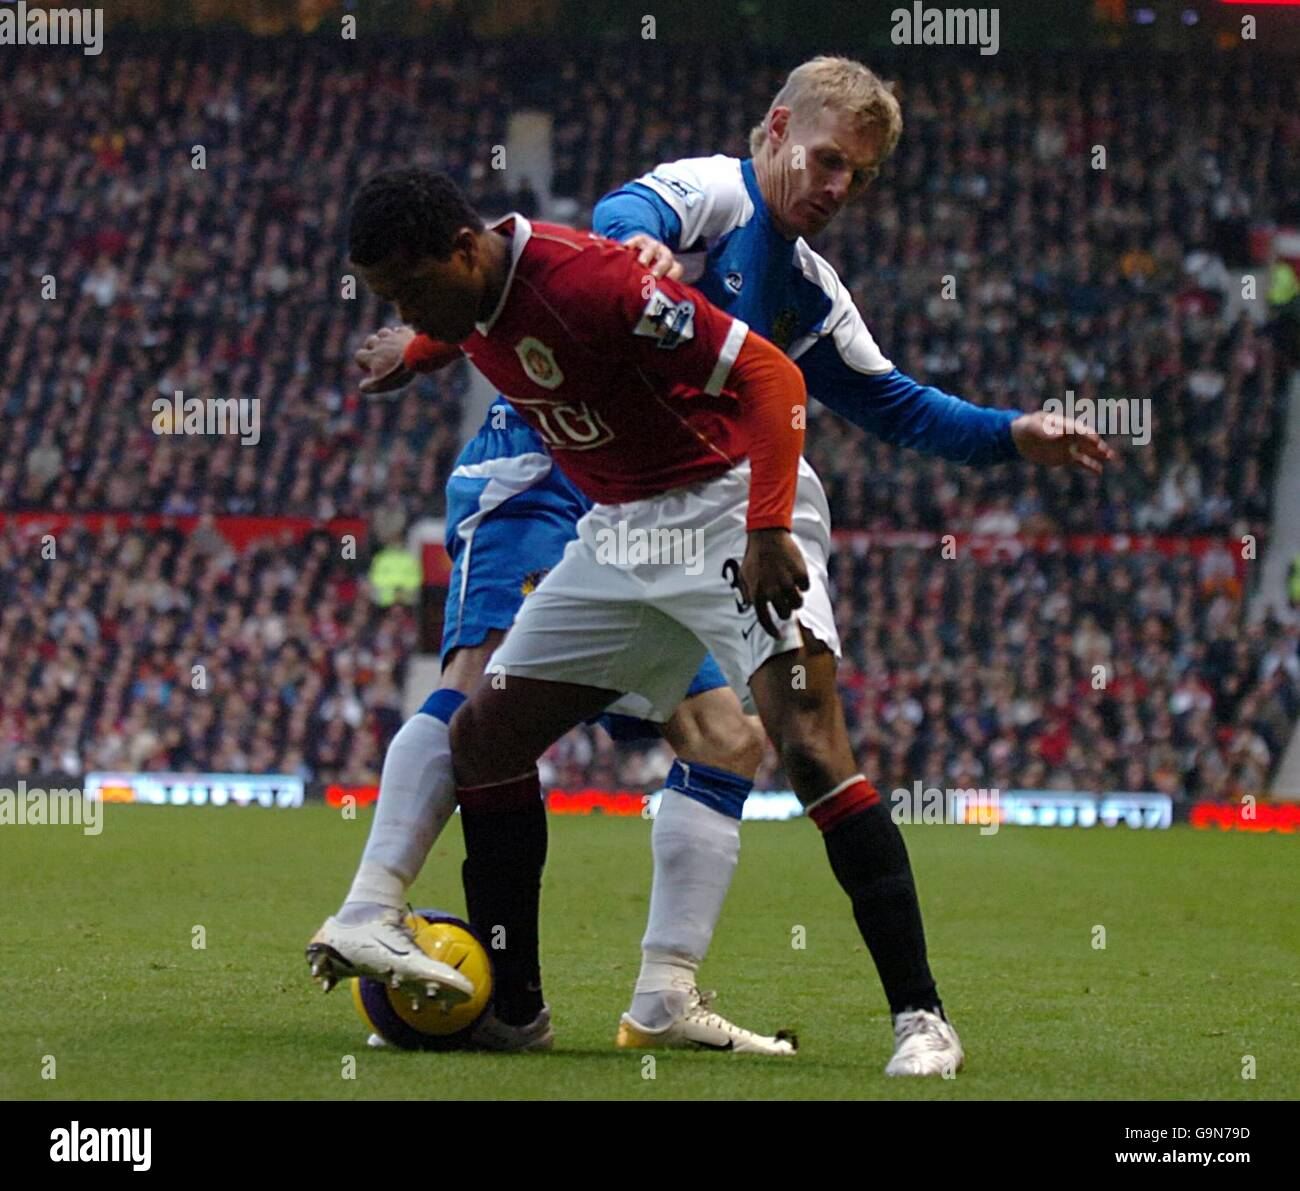 Soccer - FA Barclays Premiership - Manchester United v Wigan Athletic - Old Trafford - Stock Image